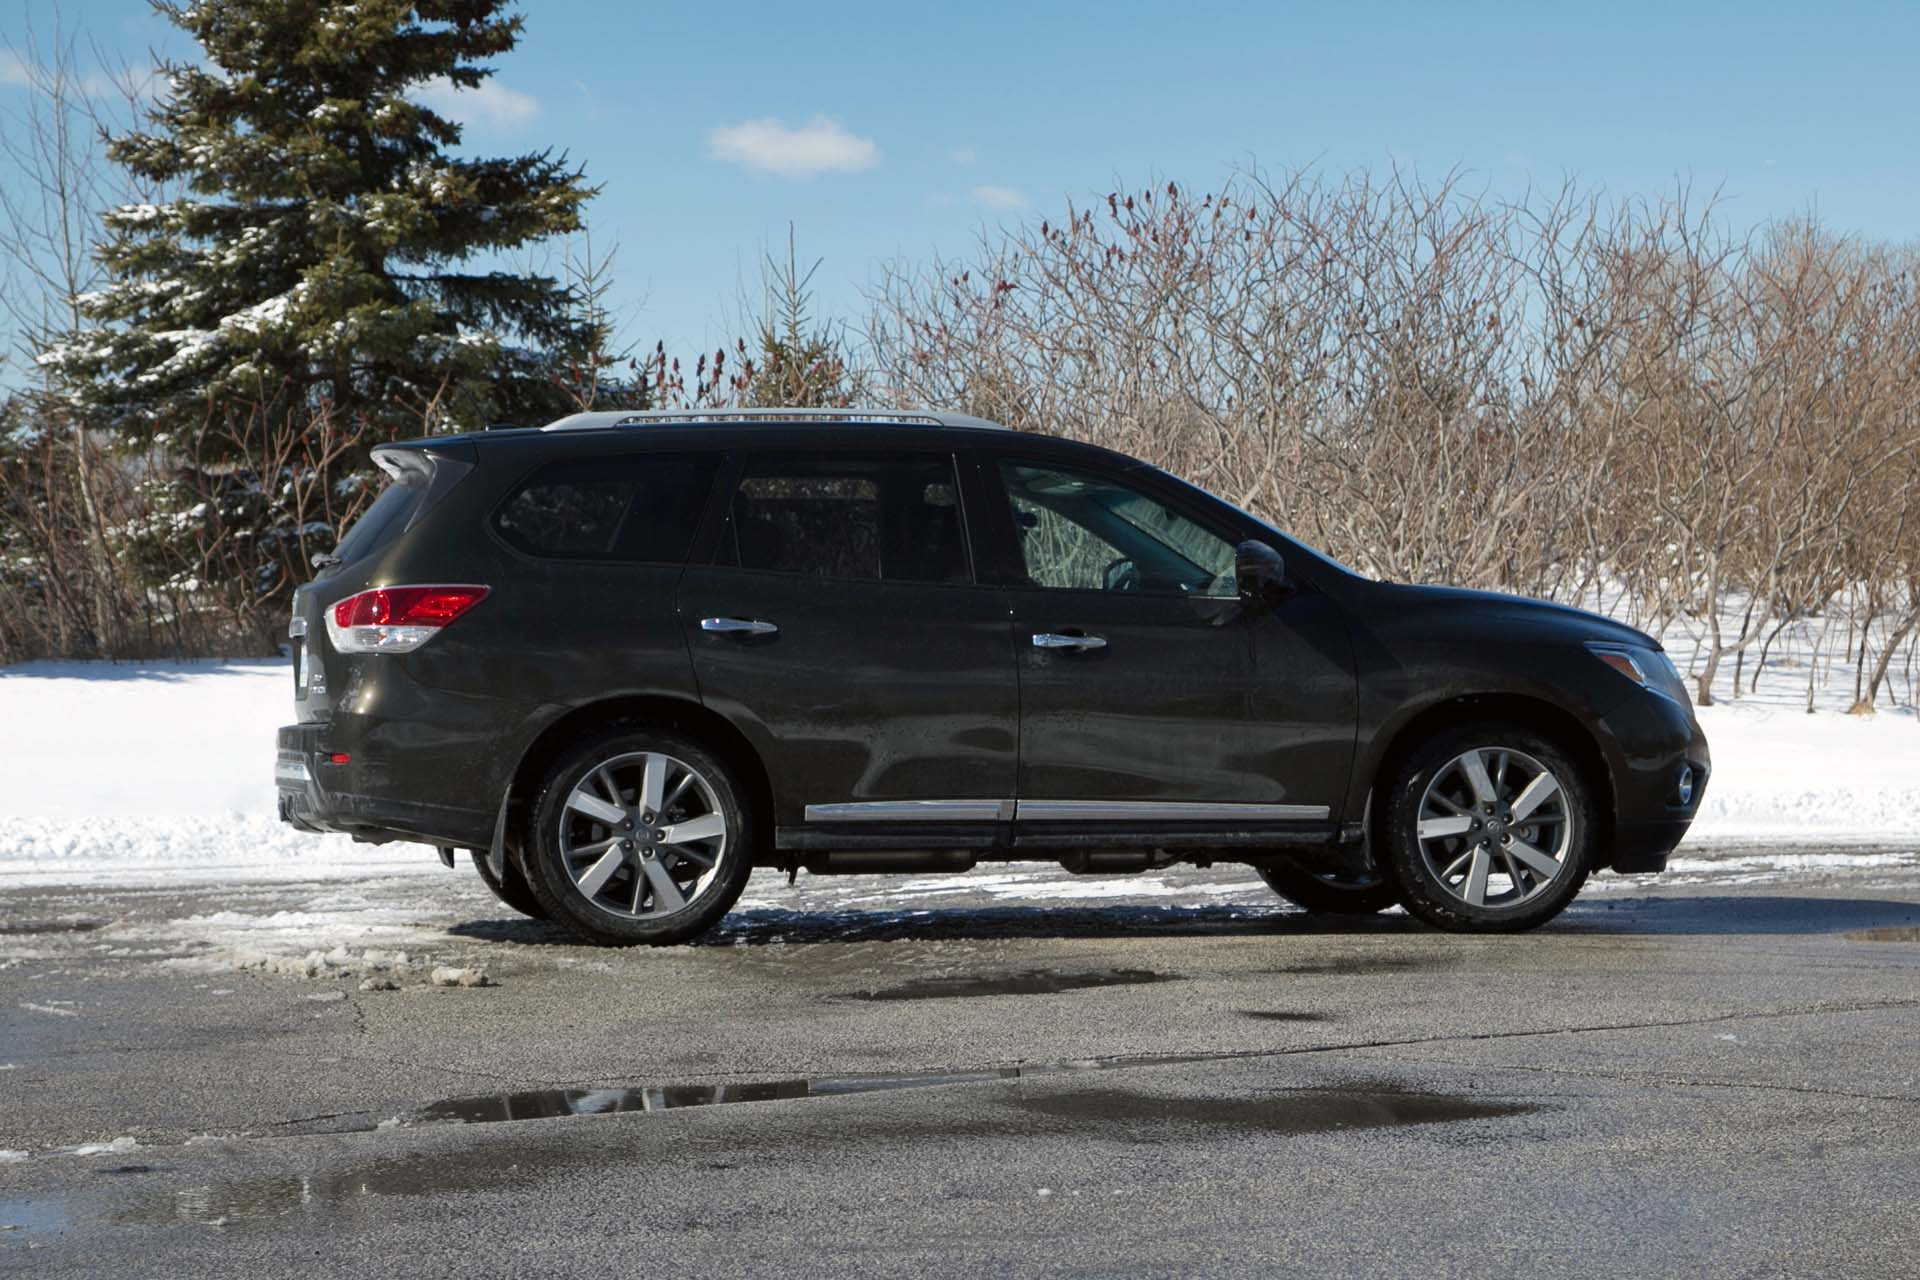 2016 Nissan Pathfinder 03 Jw on 2010 gmc acadia